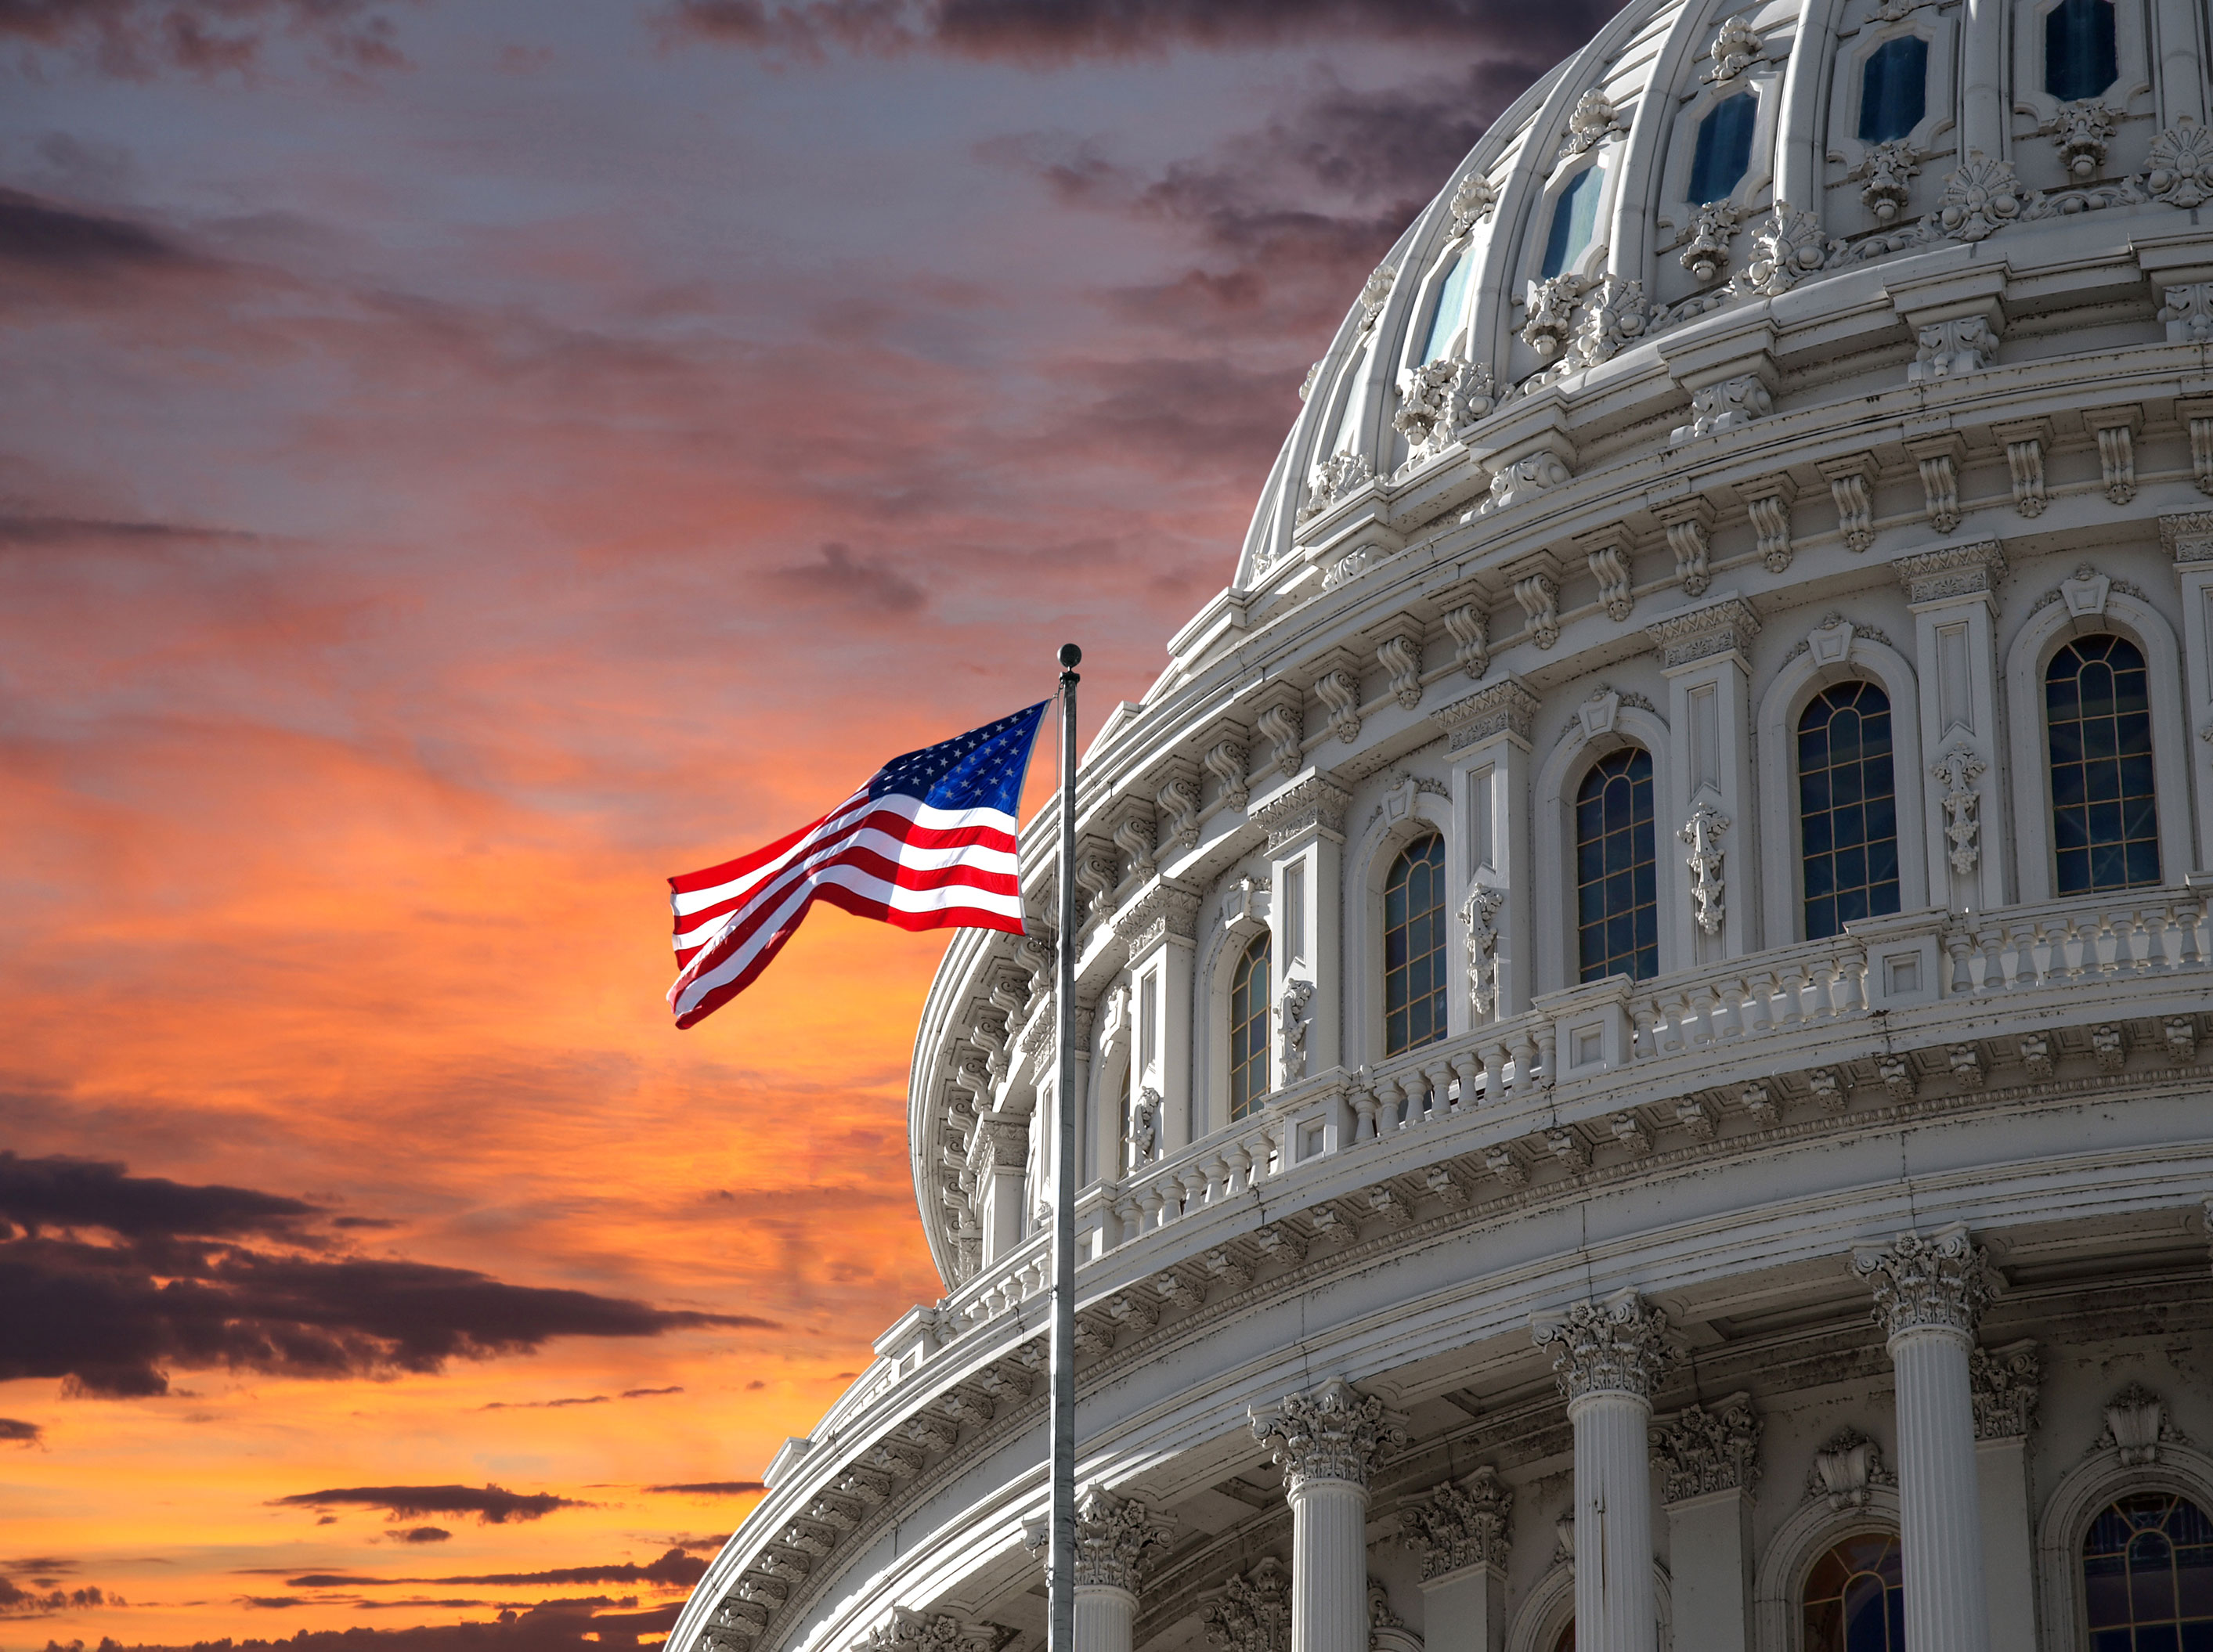 Sunset-Sky-over-US-Capitol-Building